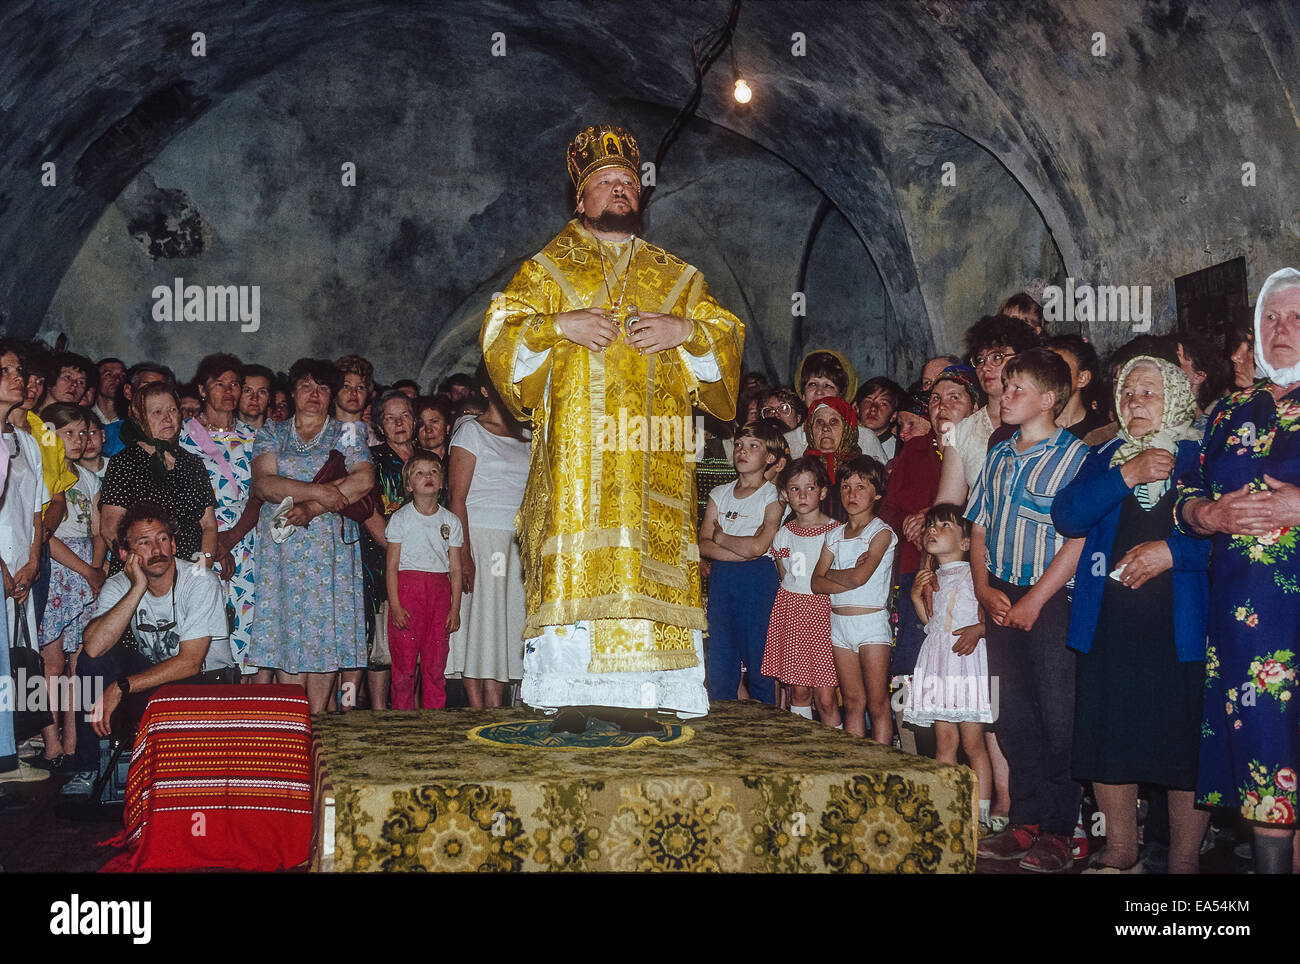 Russian Orthodox priest in Siberia with congregation including many children and older adults. - Stock Image